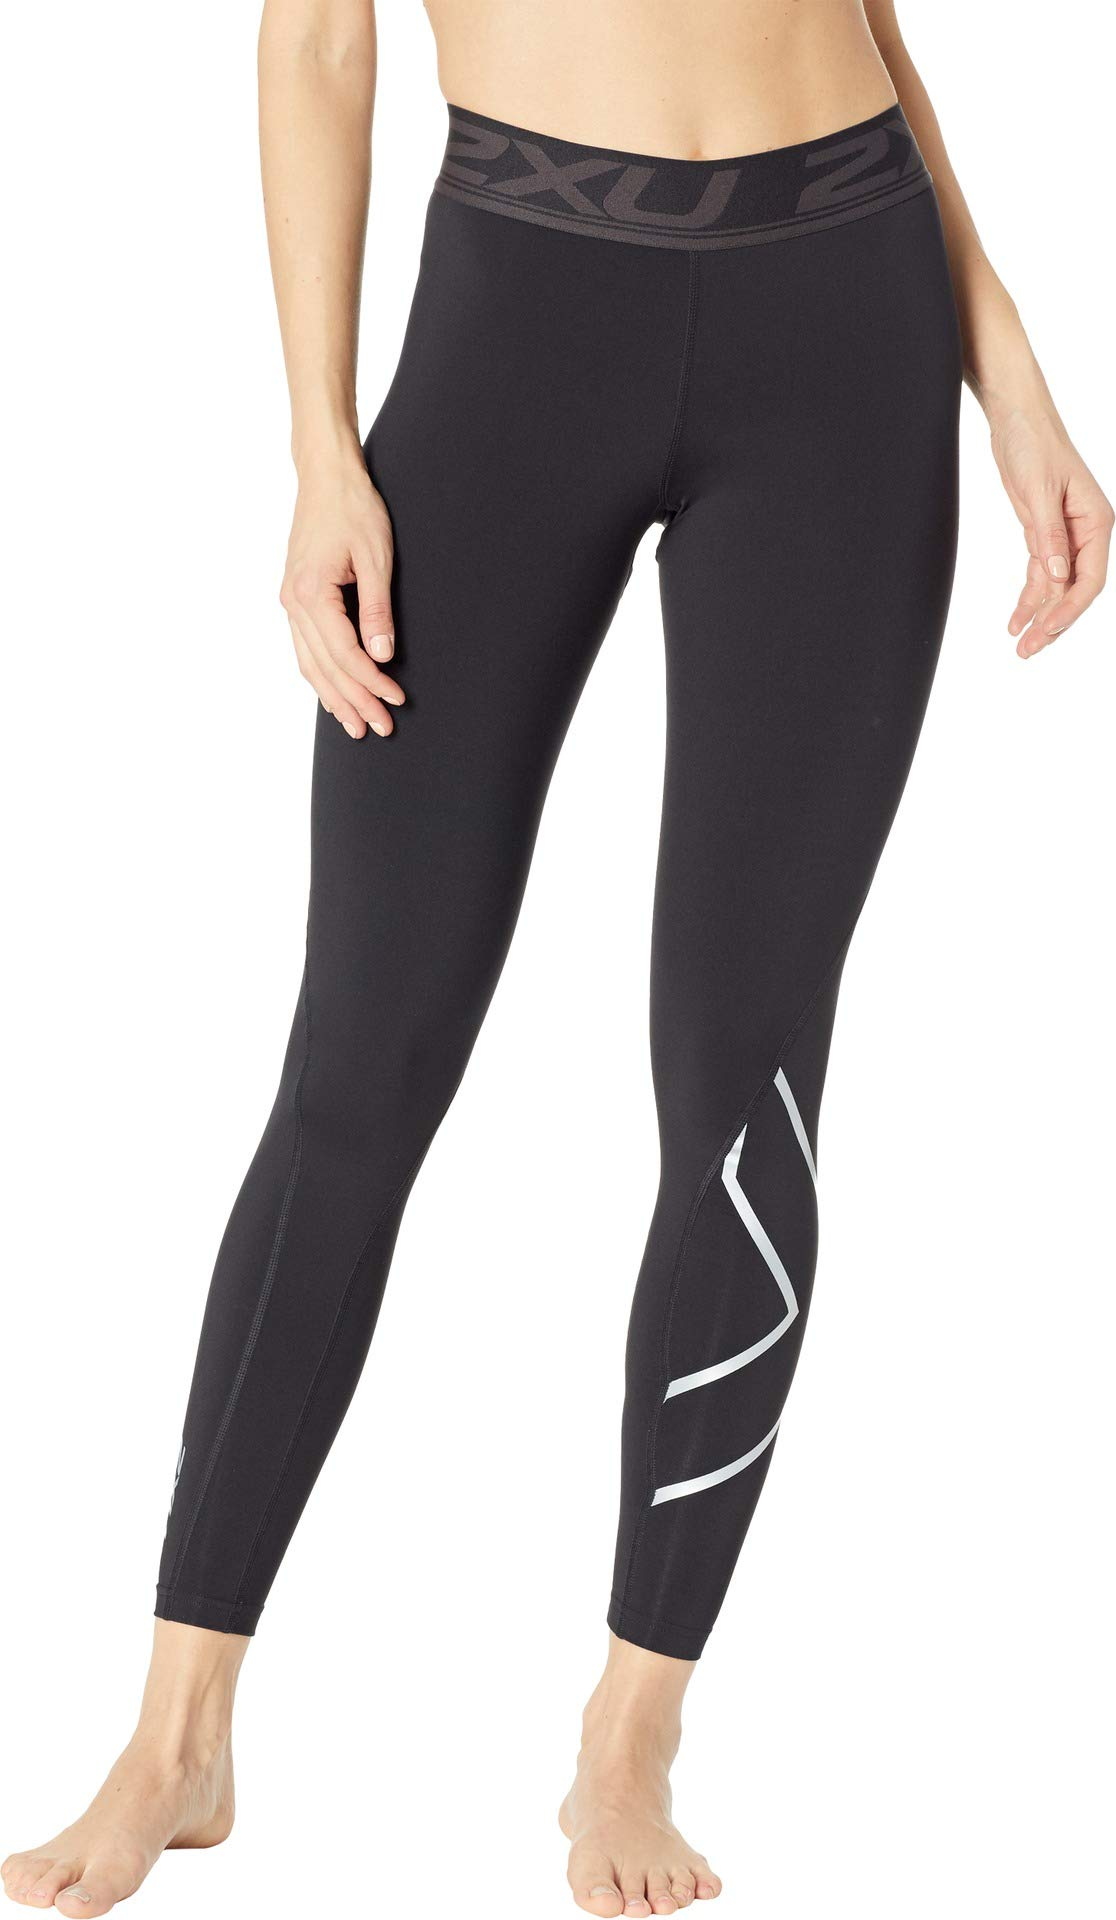 2XU Women's Thermal Compression Tights Black/Silver Large R R